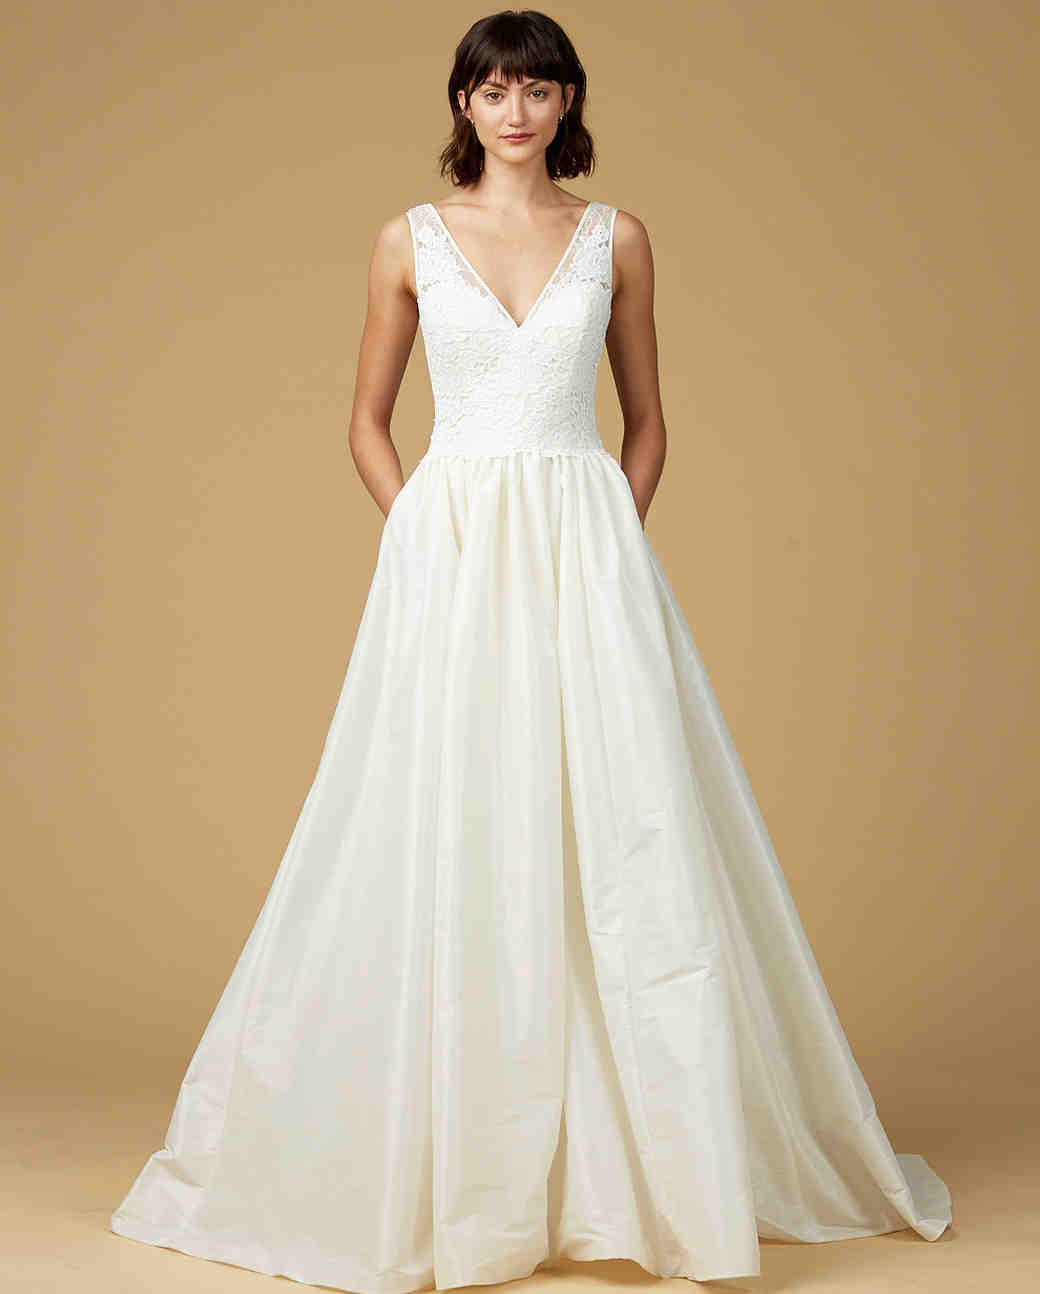 amsale nouvelle wedding dresses fall wedding dress with pockets Amsale Nouvelle Fall Wedding Dress Collection